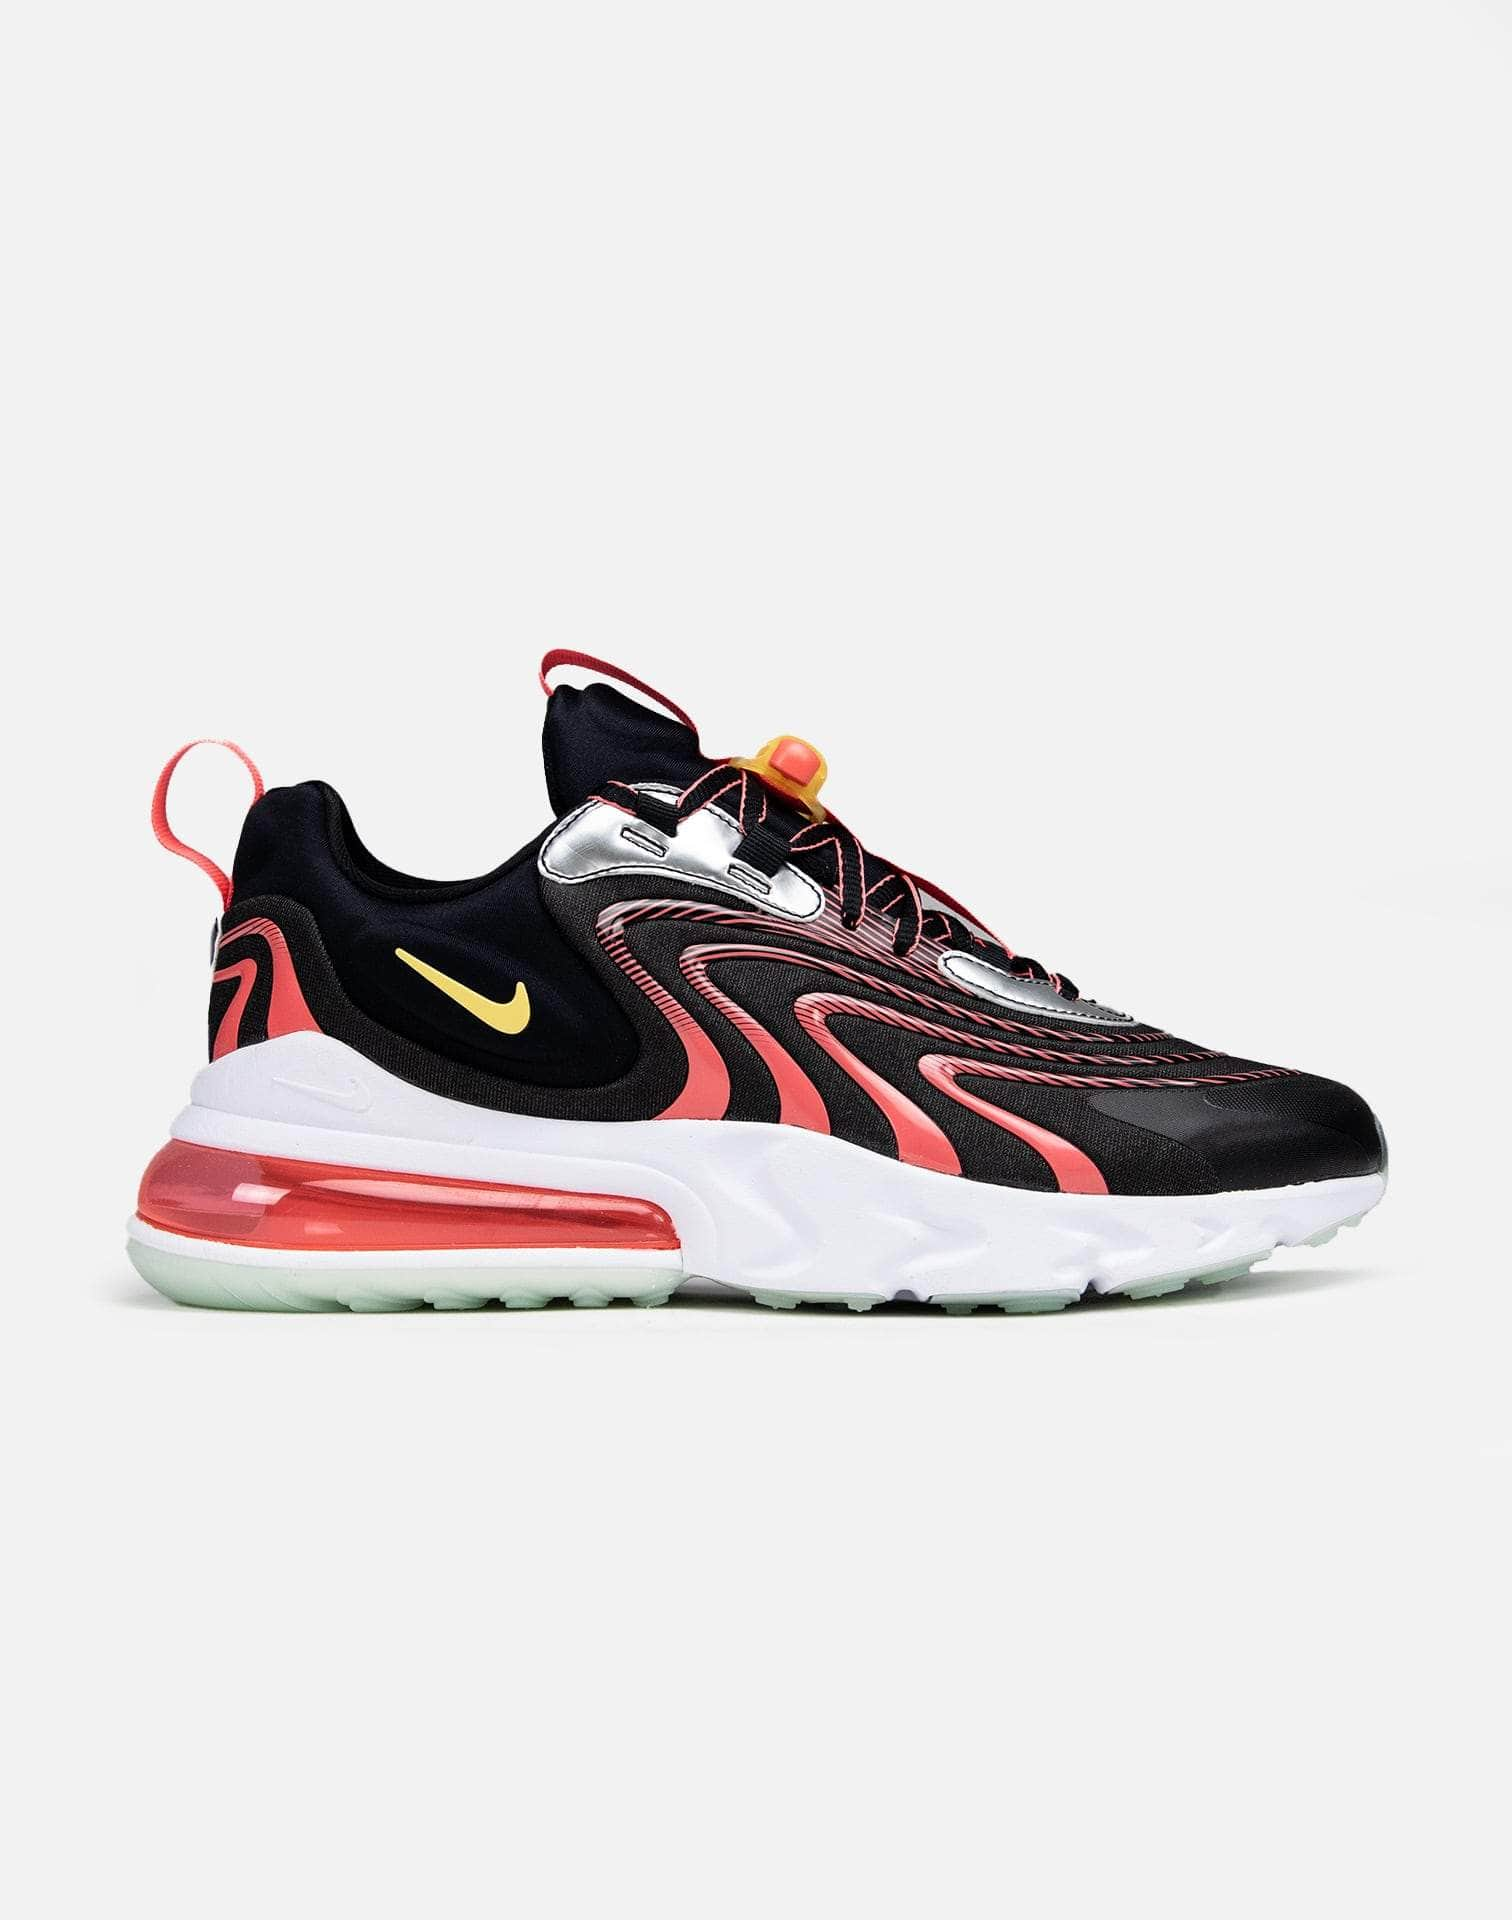 Air Max 270 React Eng Dtlr